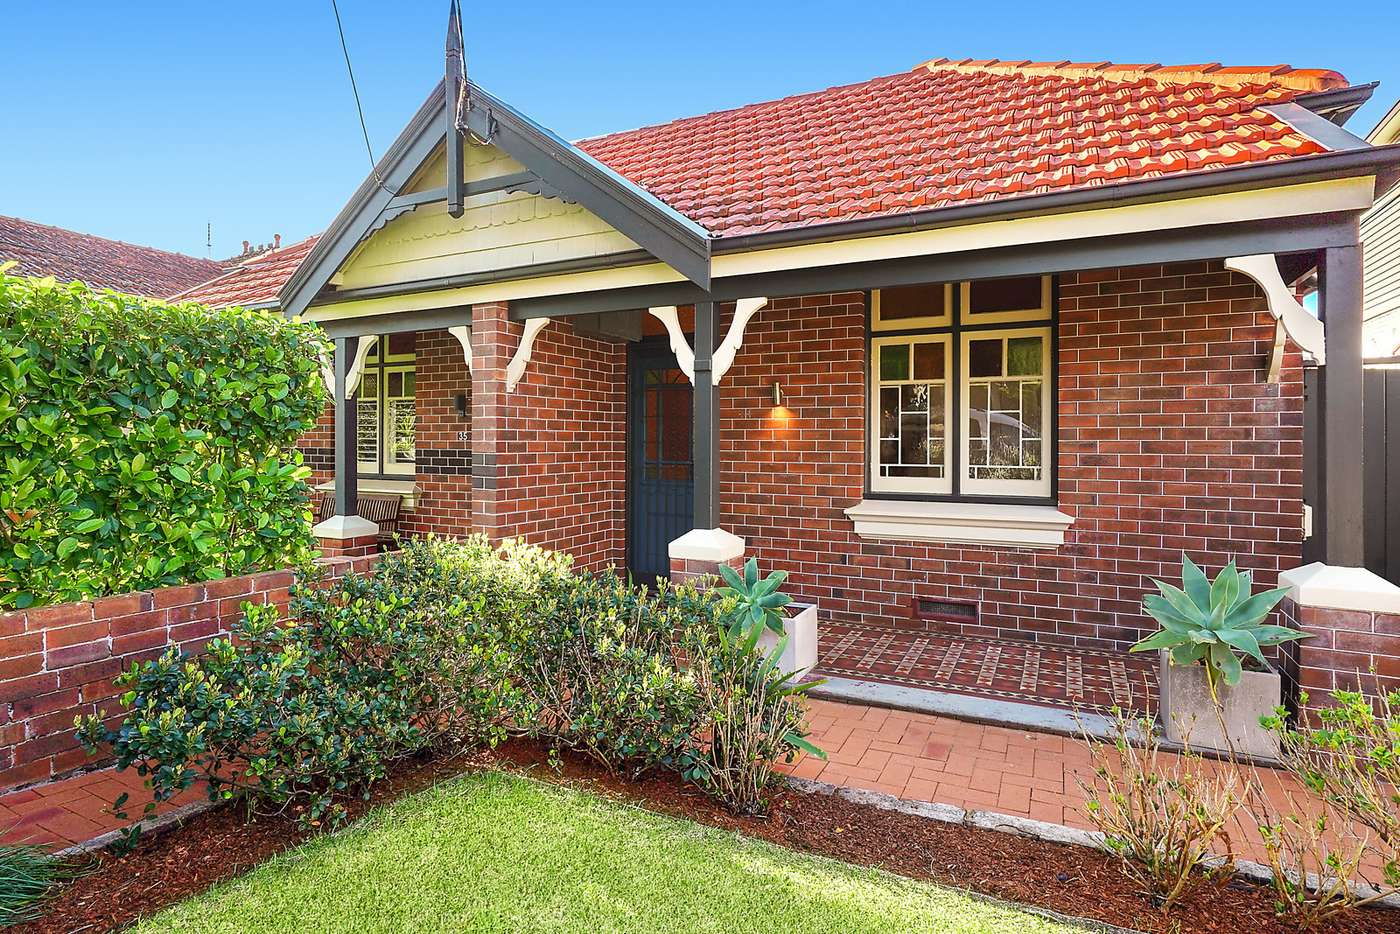 Main view of Homely house listing, 33 Slade Street, Naremburn NSW 2065